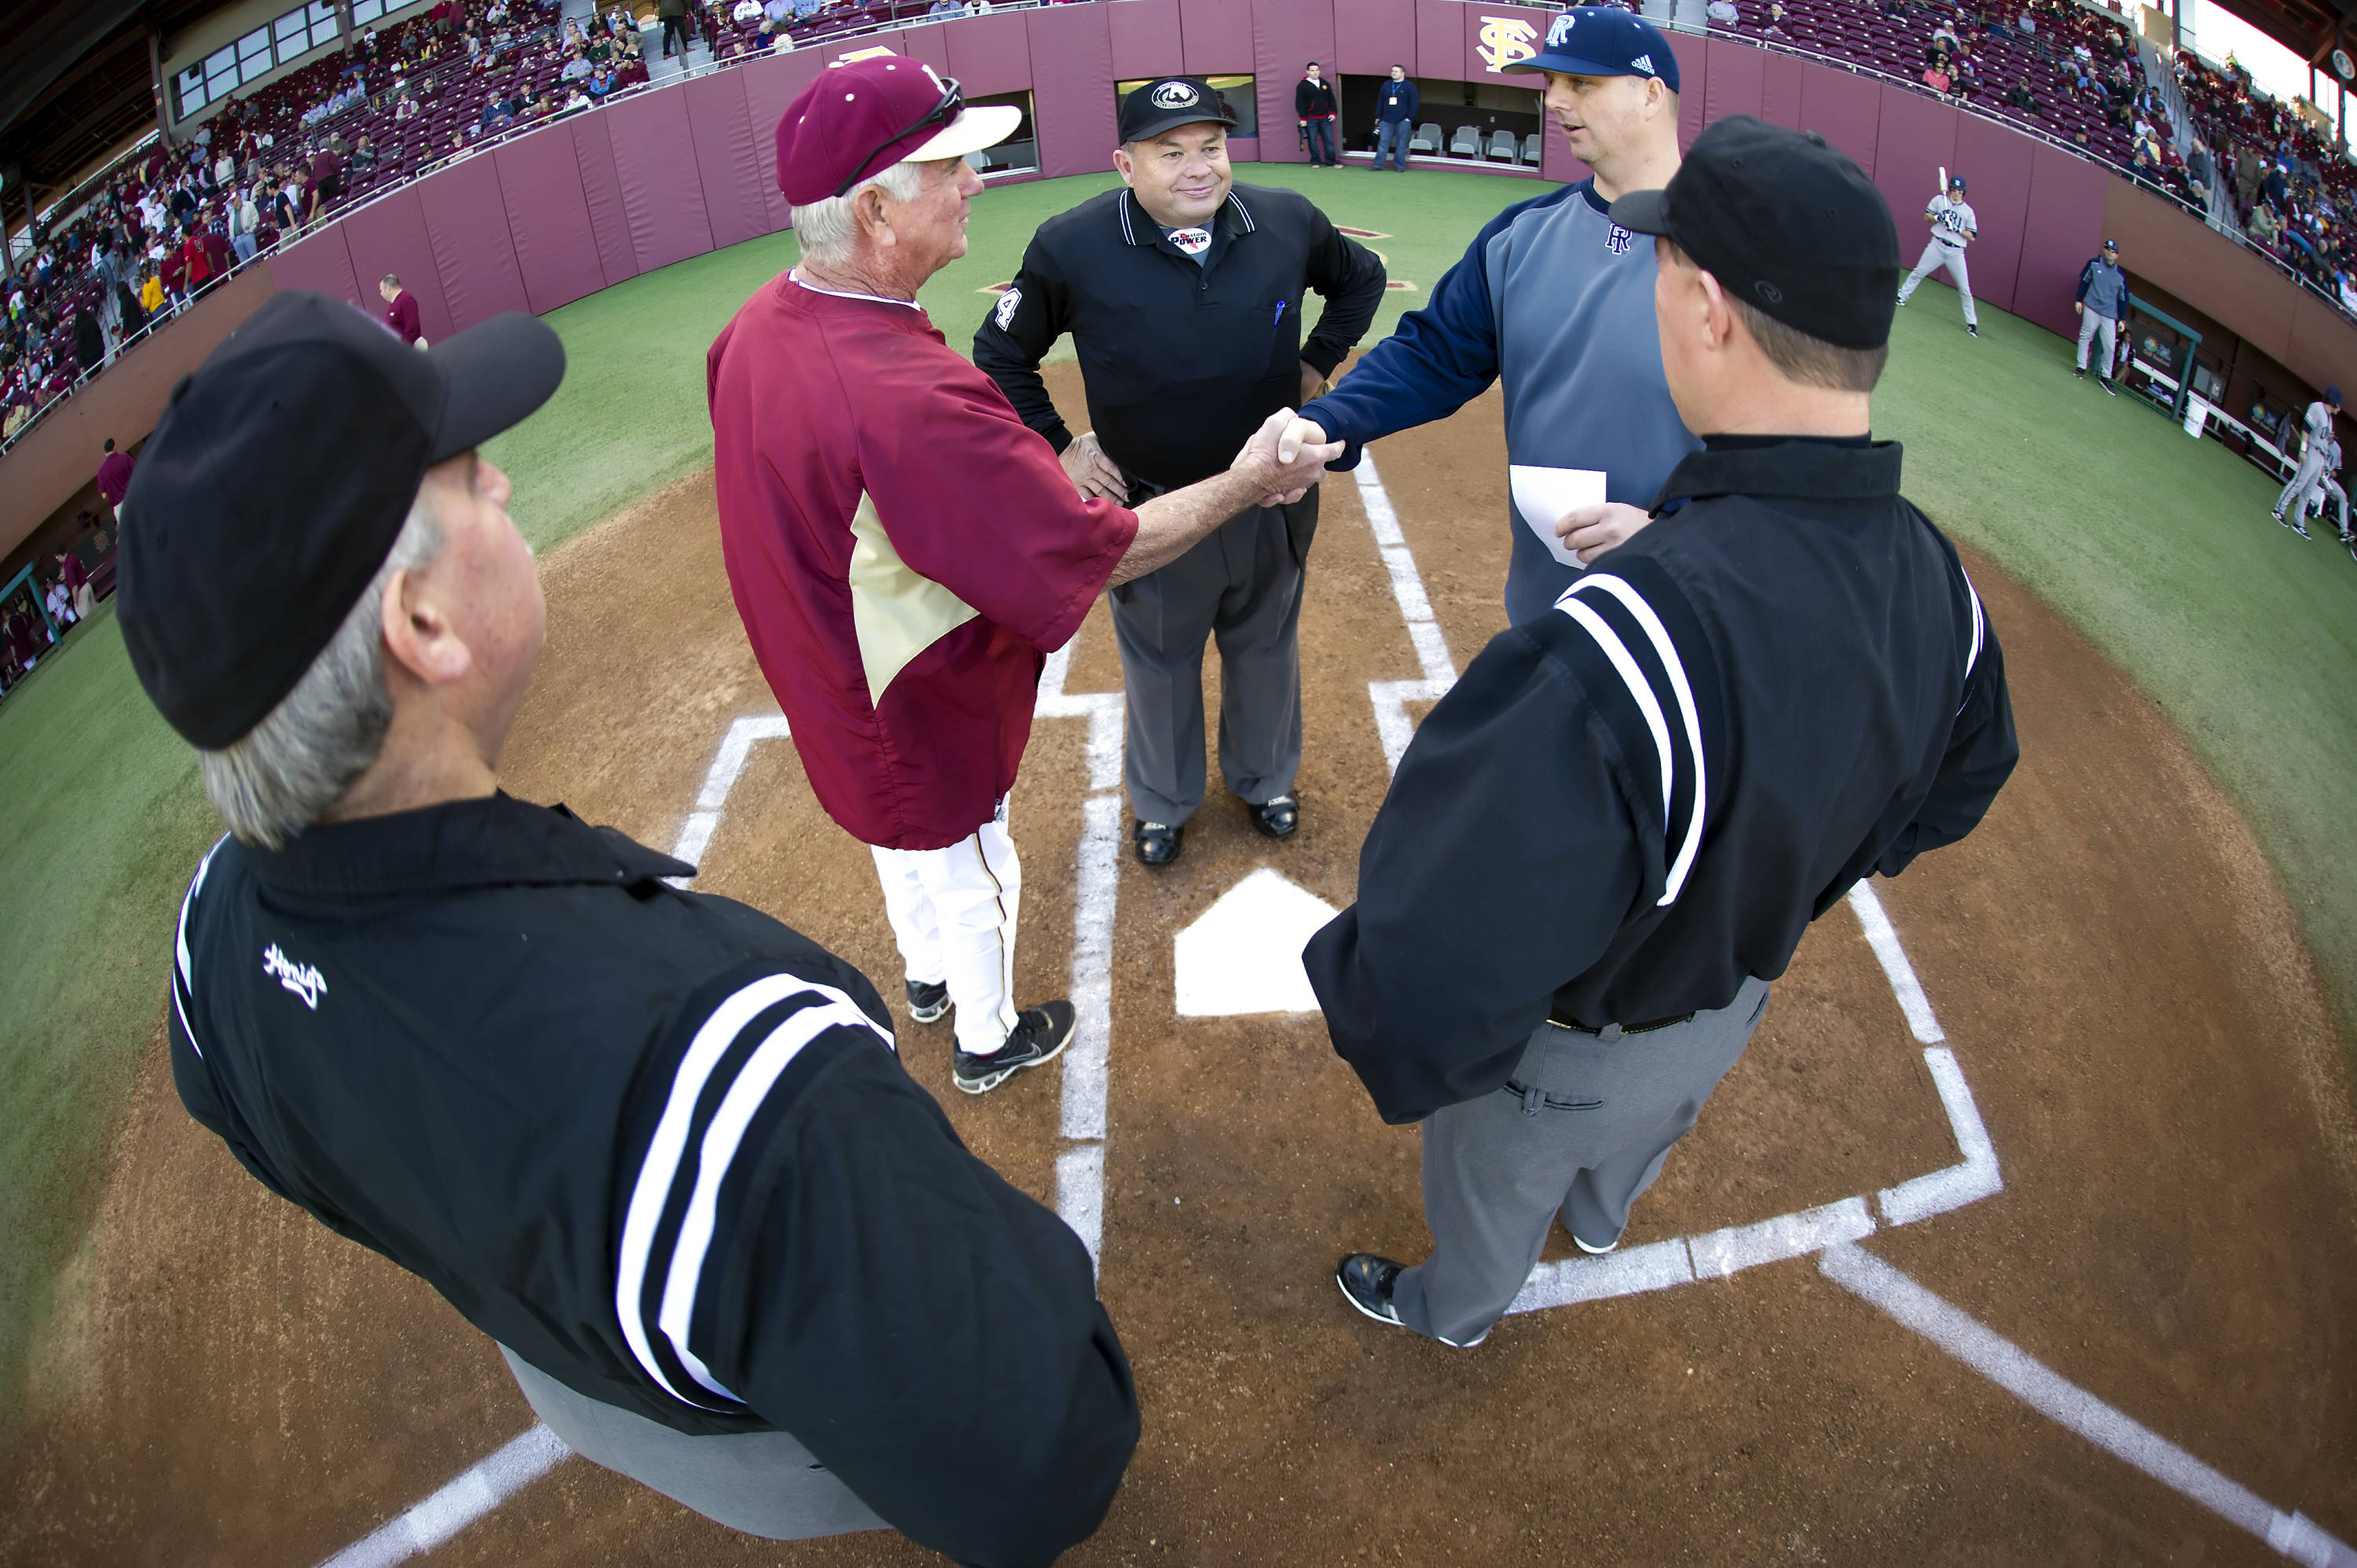 FSU head coach Mike Martin greets URI head coach Jim Foster at home plate before the start of Friday's season opener.